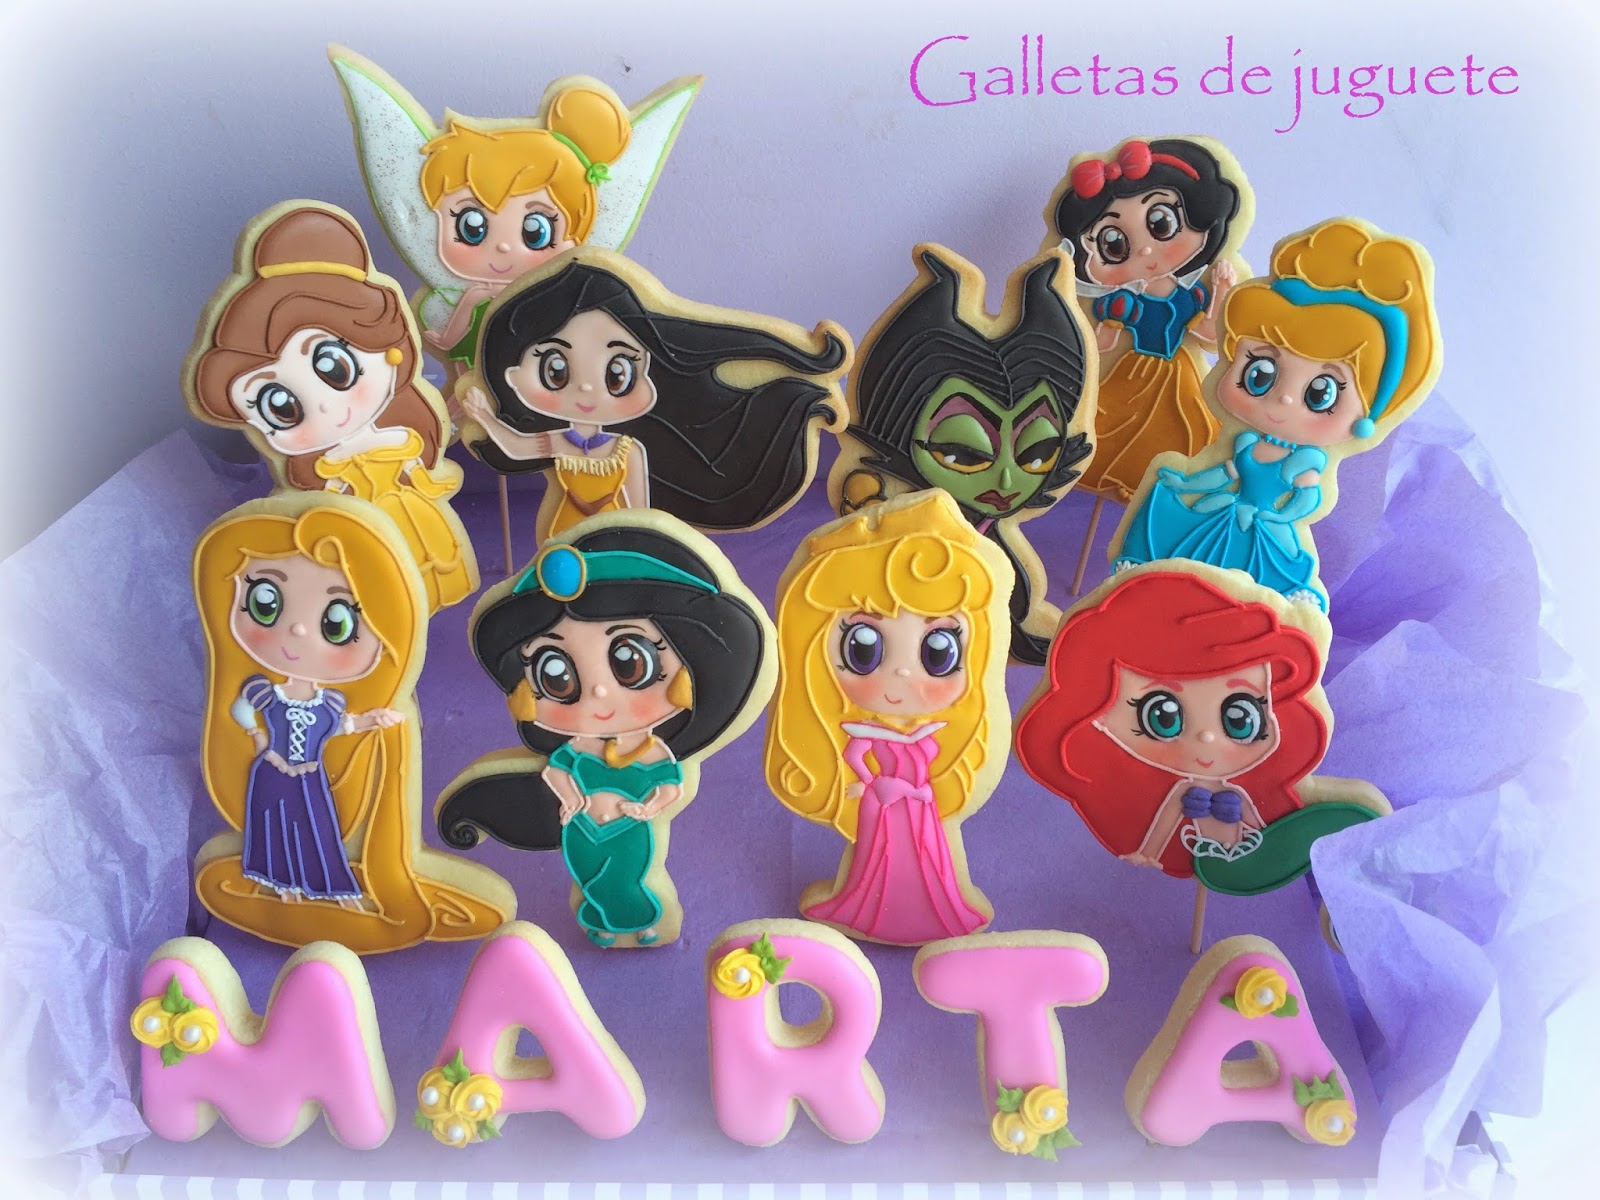 Galletas Decoradas De Princesas Galletas De Juguete Galletas Princesas Disney